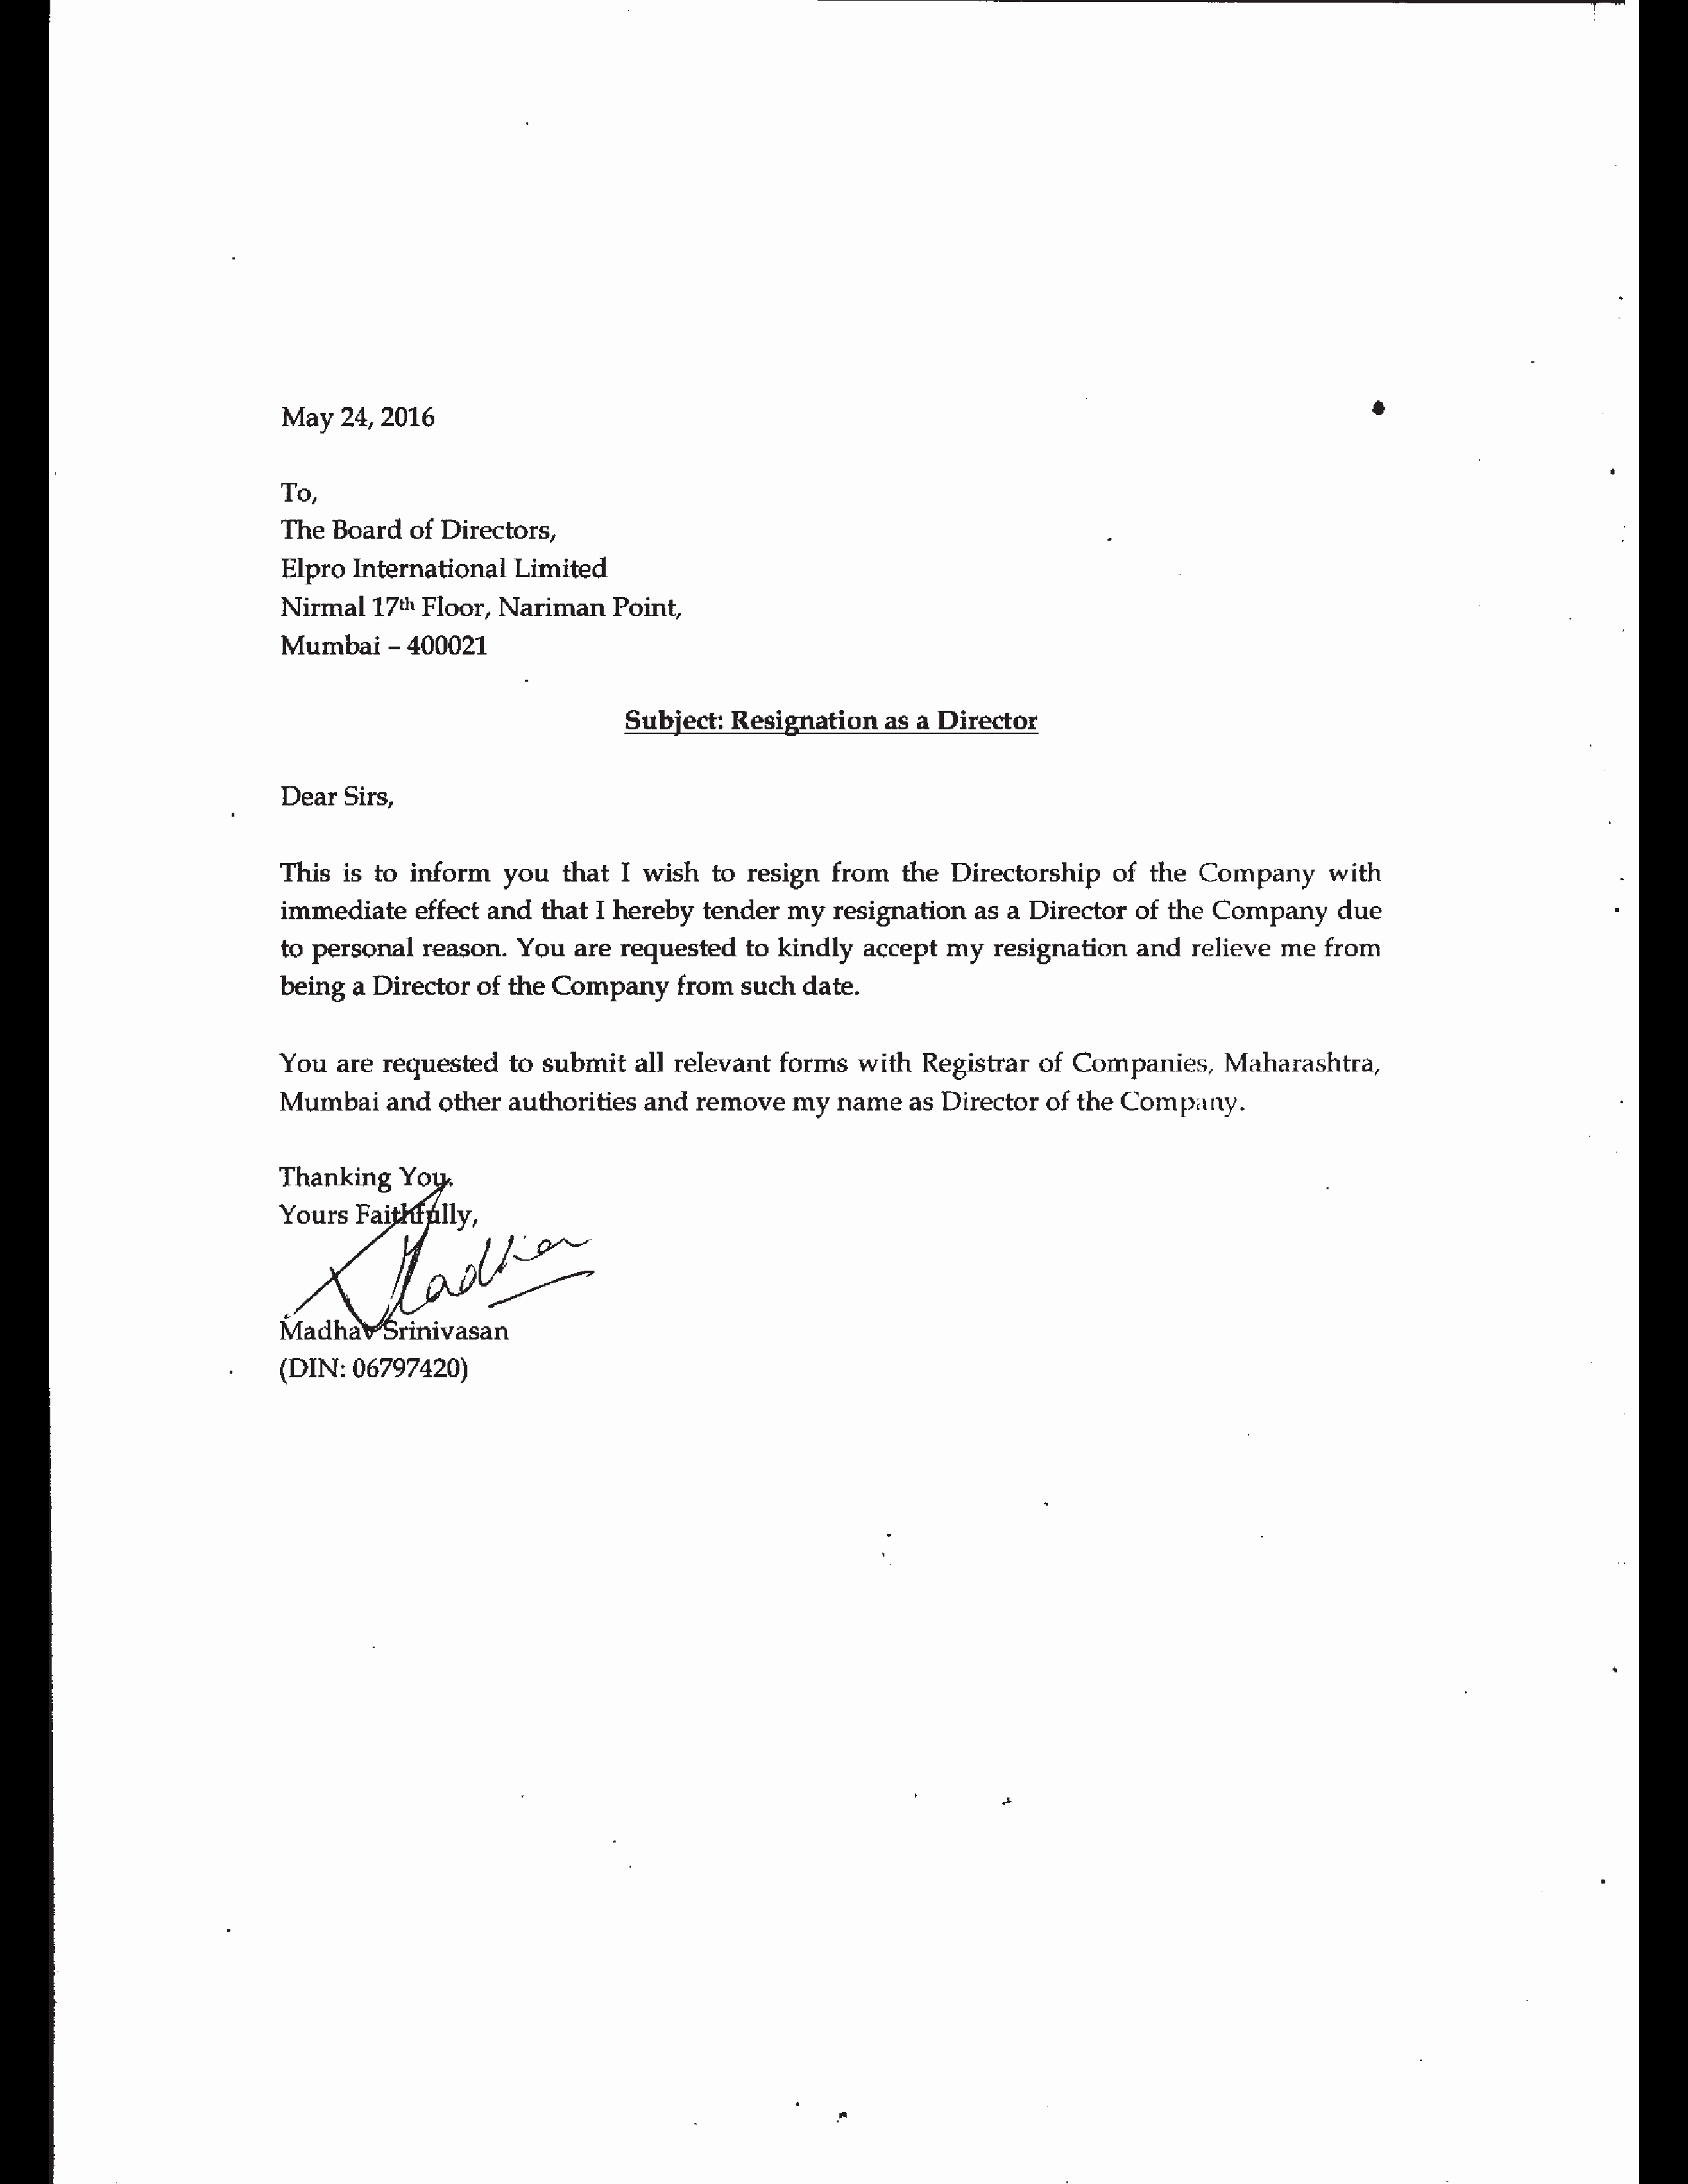 Resignation Letter for Personal Reasons Luxury Immediate Resignation Letter Due to Personal Reasons